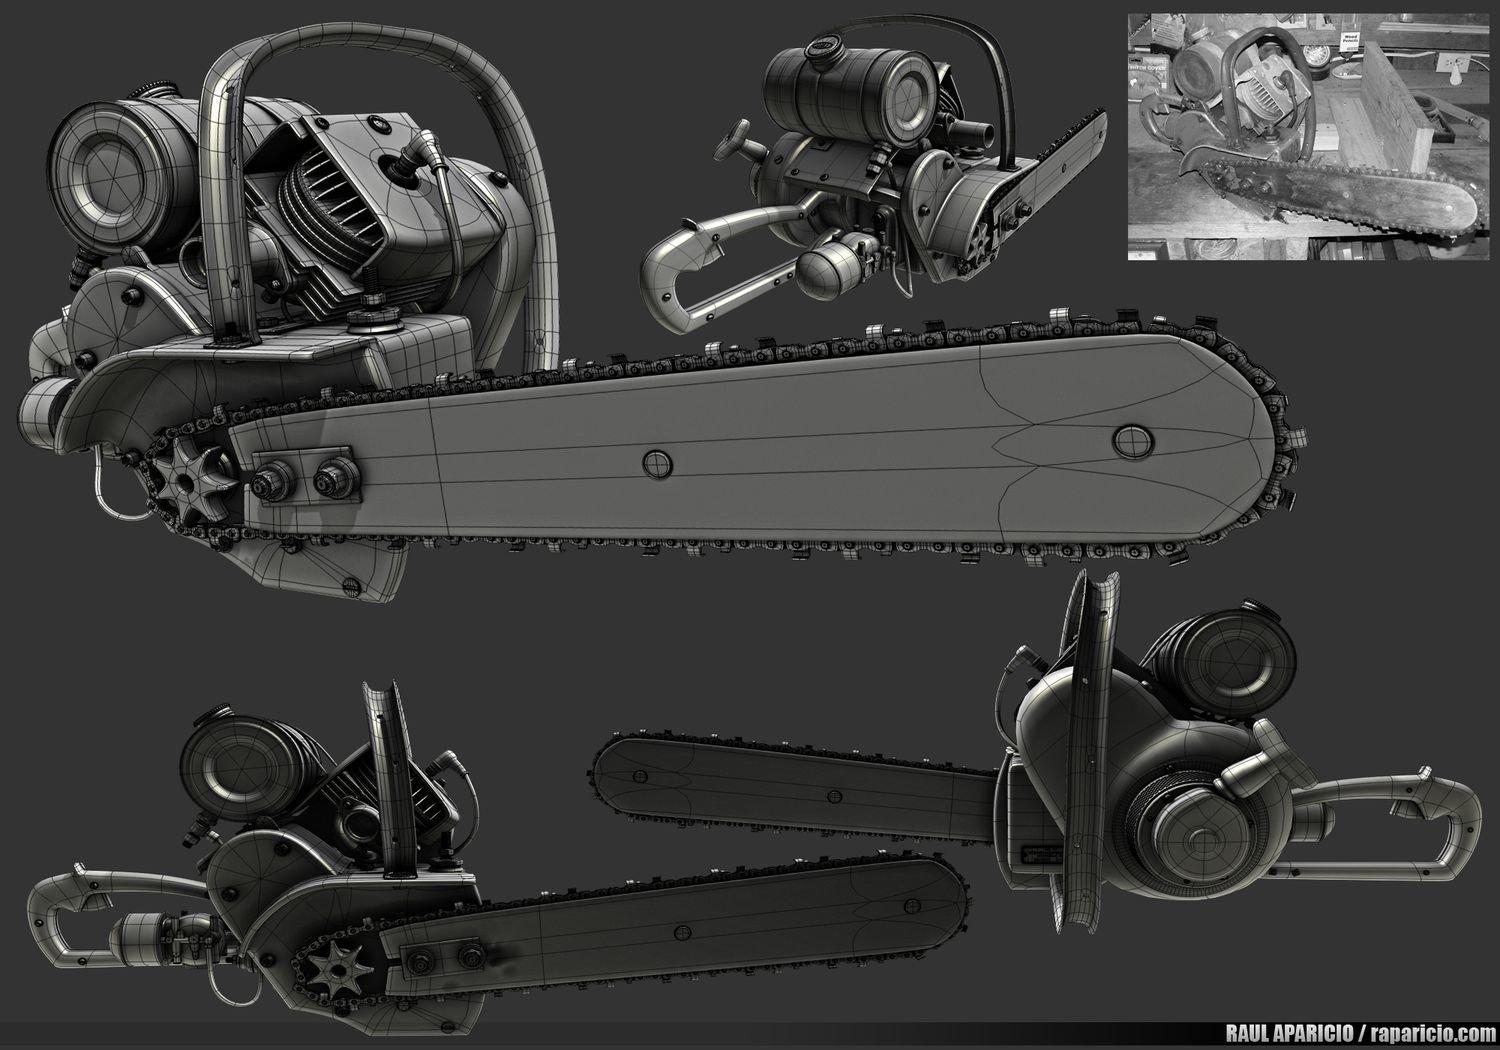 Raul aparicio props chainsaw 04 highwires big